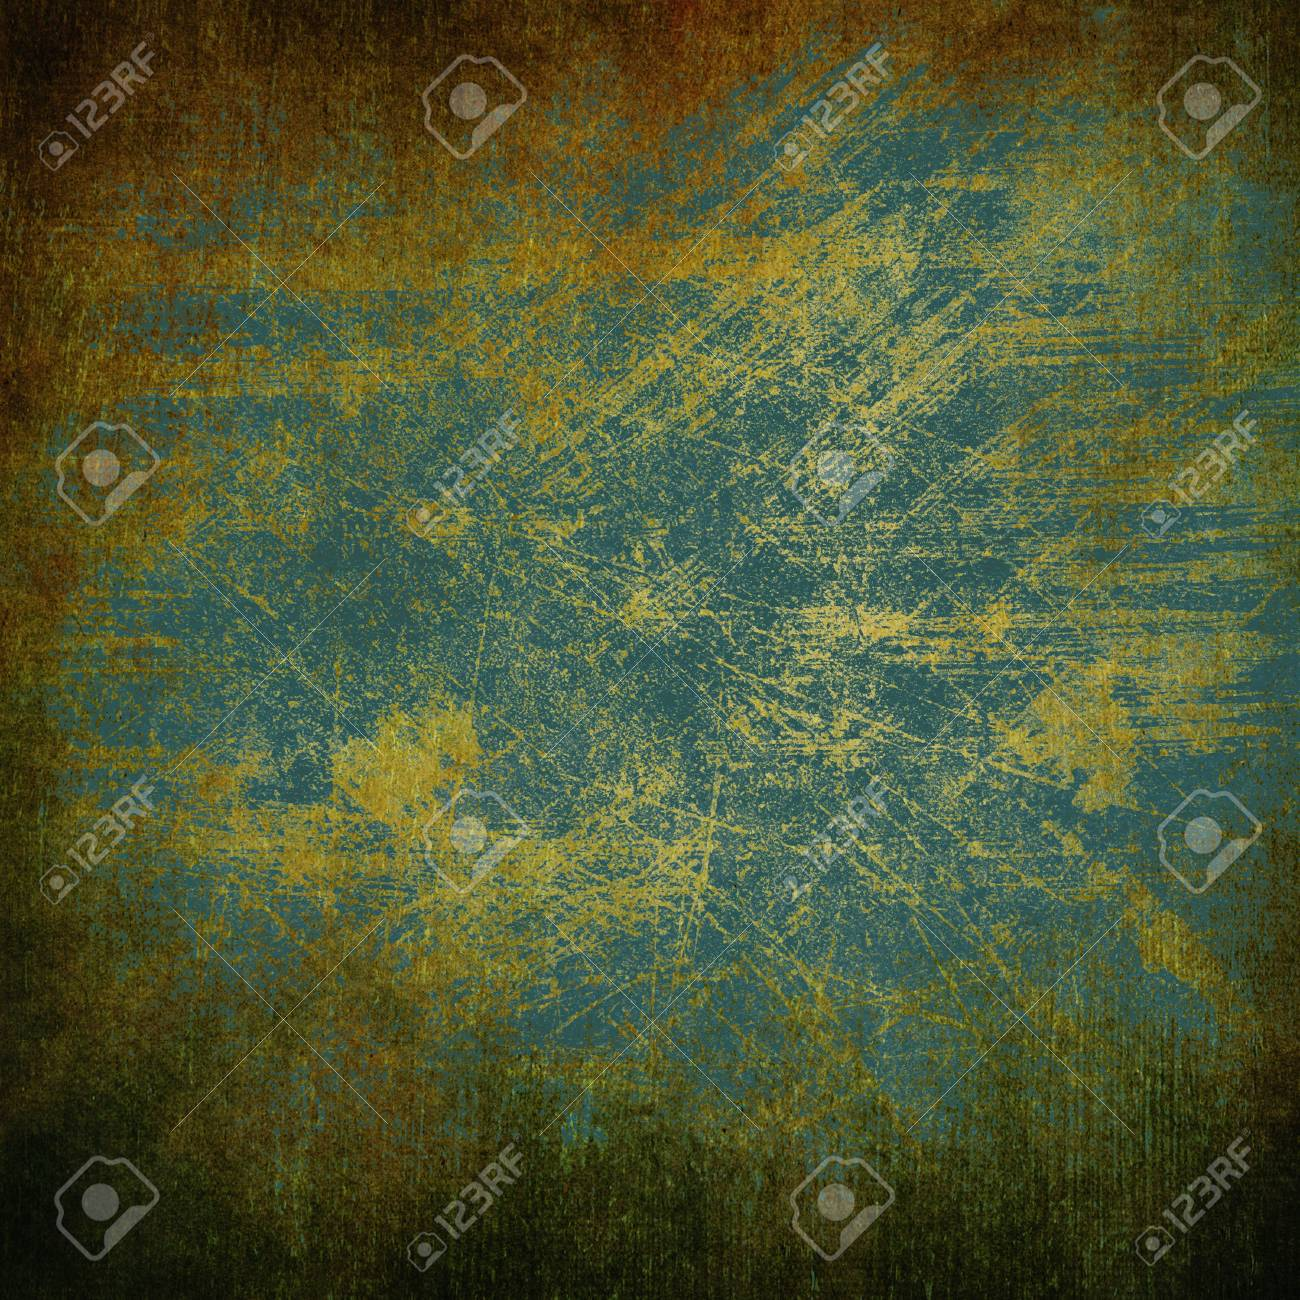 Abstract blue and brown background or paper with bright spotlights and dark border frame with grunge background texture  For vintage layout design of light colorful graphic art Stock Photo - 18016075